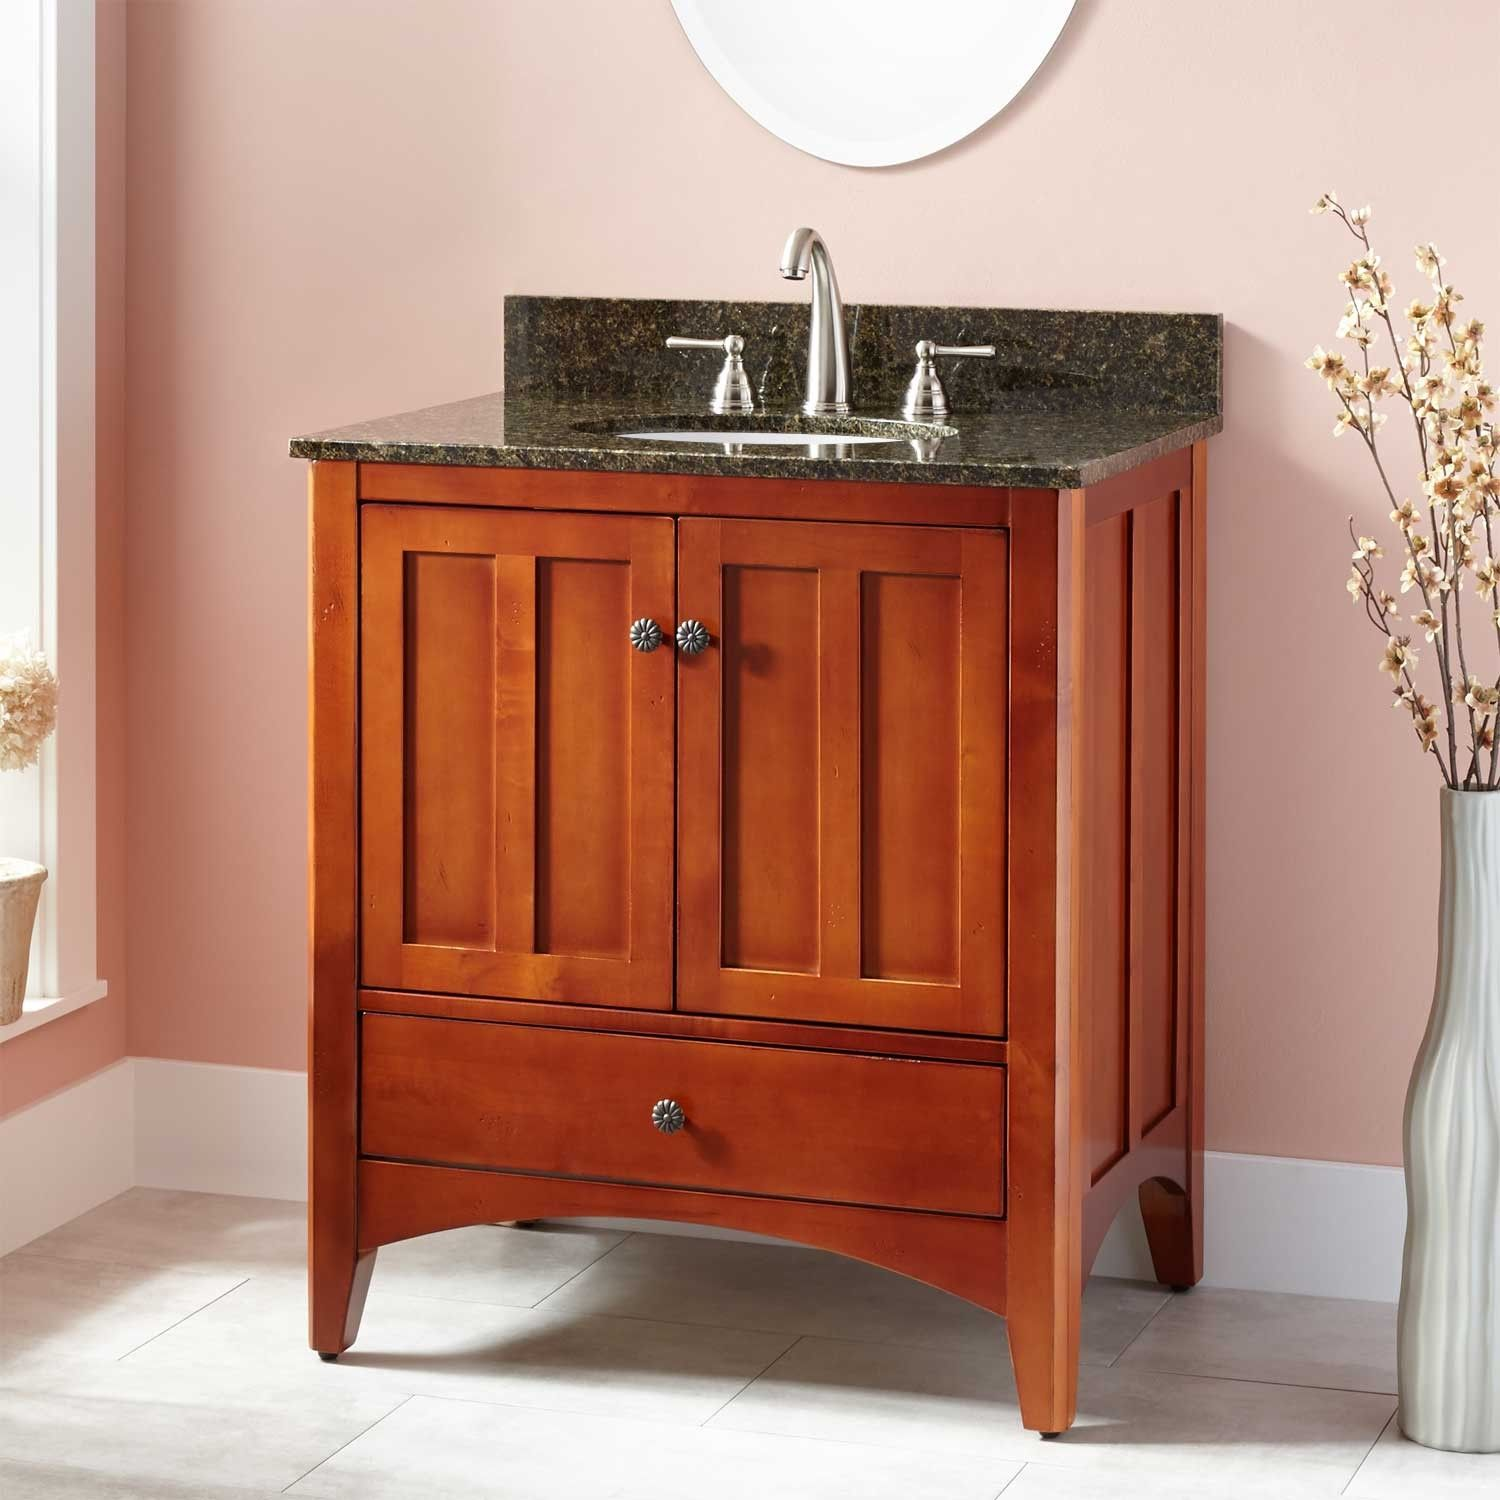 "30"" Ibarra Vanity For Undermount Sink  Cherry  Vanities Sinks Impressive Cherry Bathroom Vanity Inspiration Design"